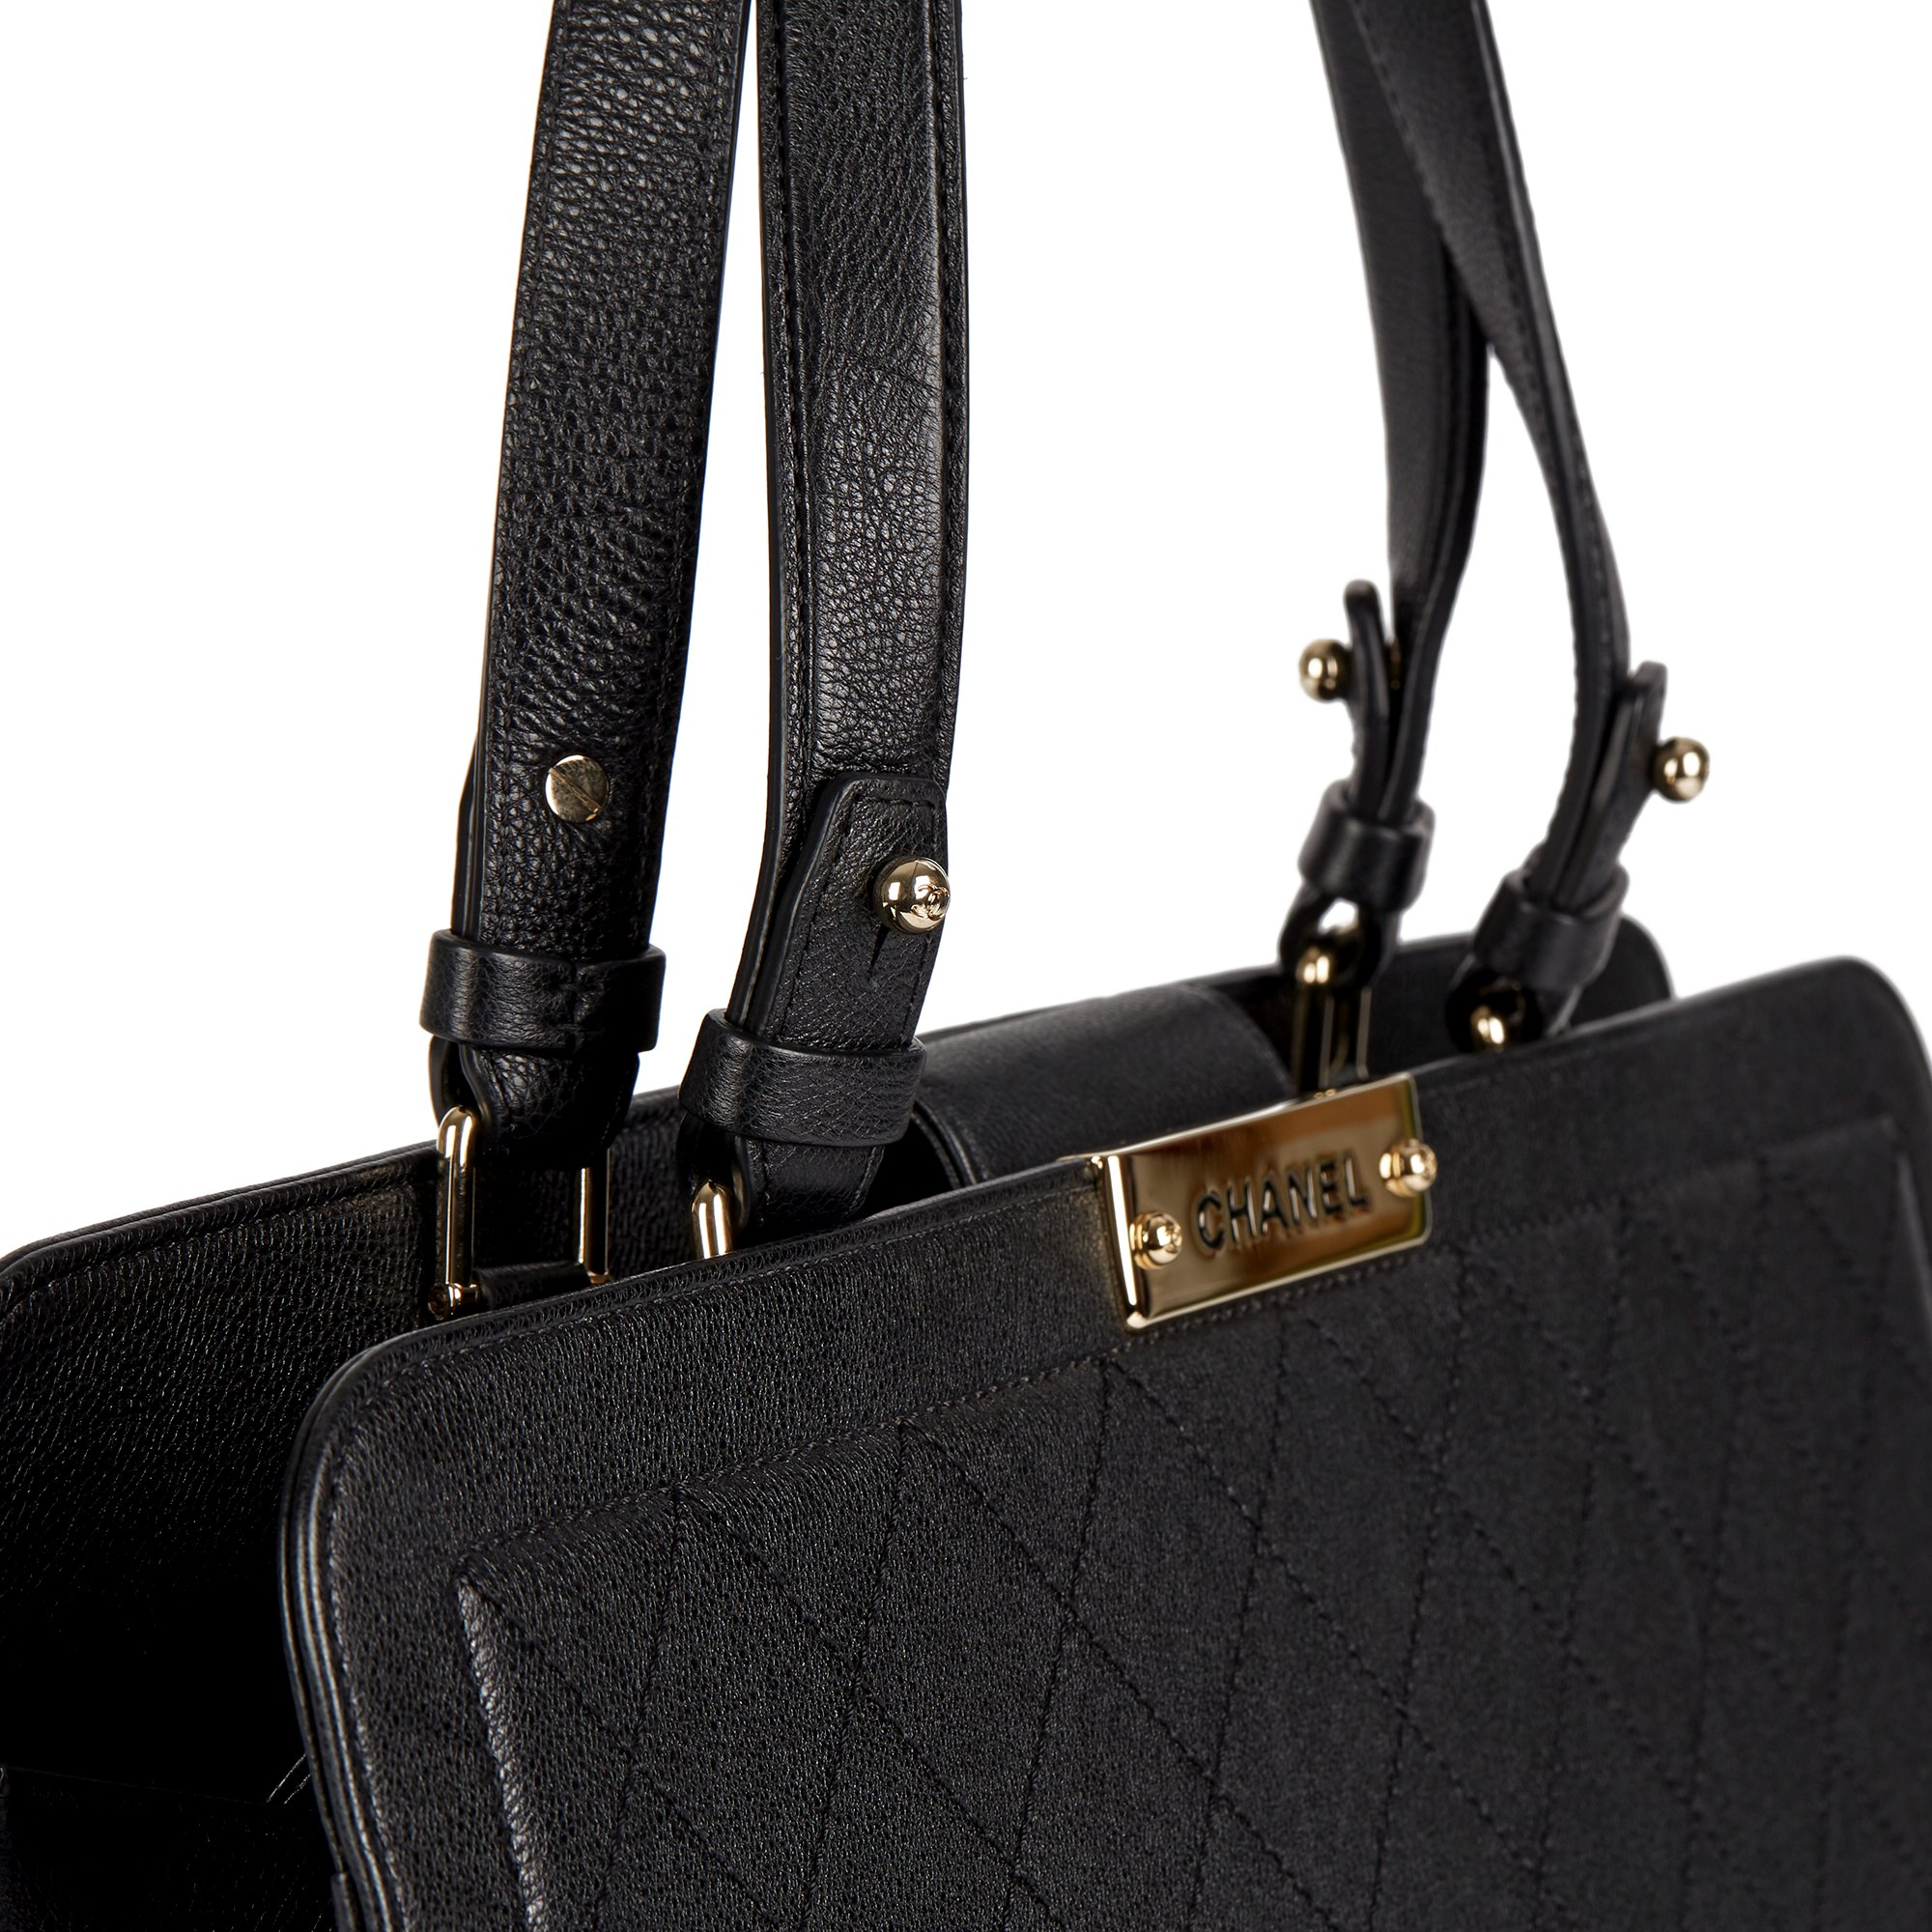 Chanel Black Quilted Calfskin Leather Large Label Click bidping Tote - Image 7 of 11